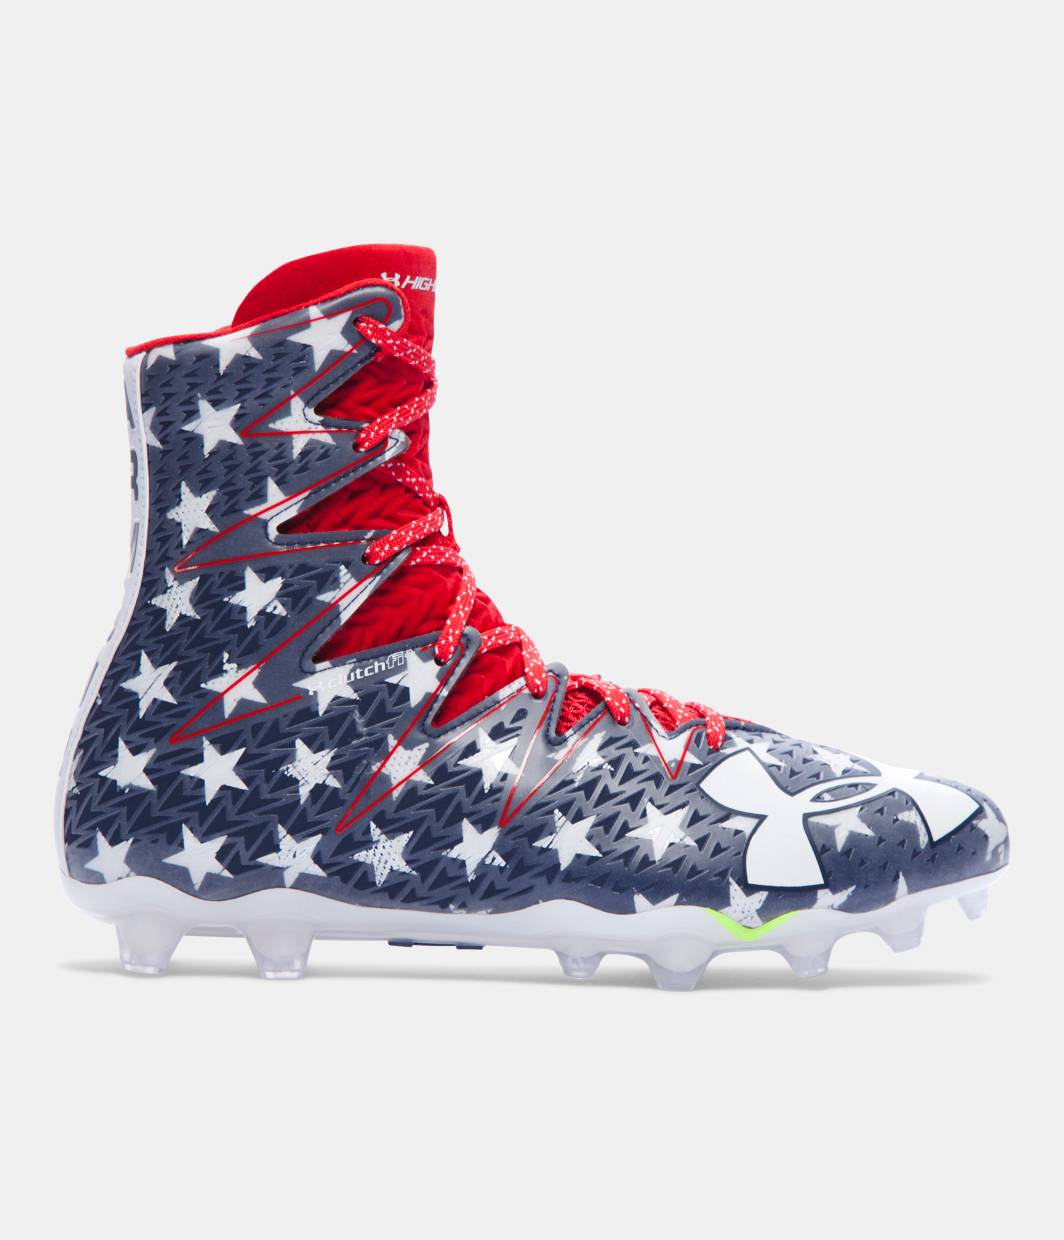 Under Armour Womens Lacrosse Shoes